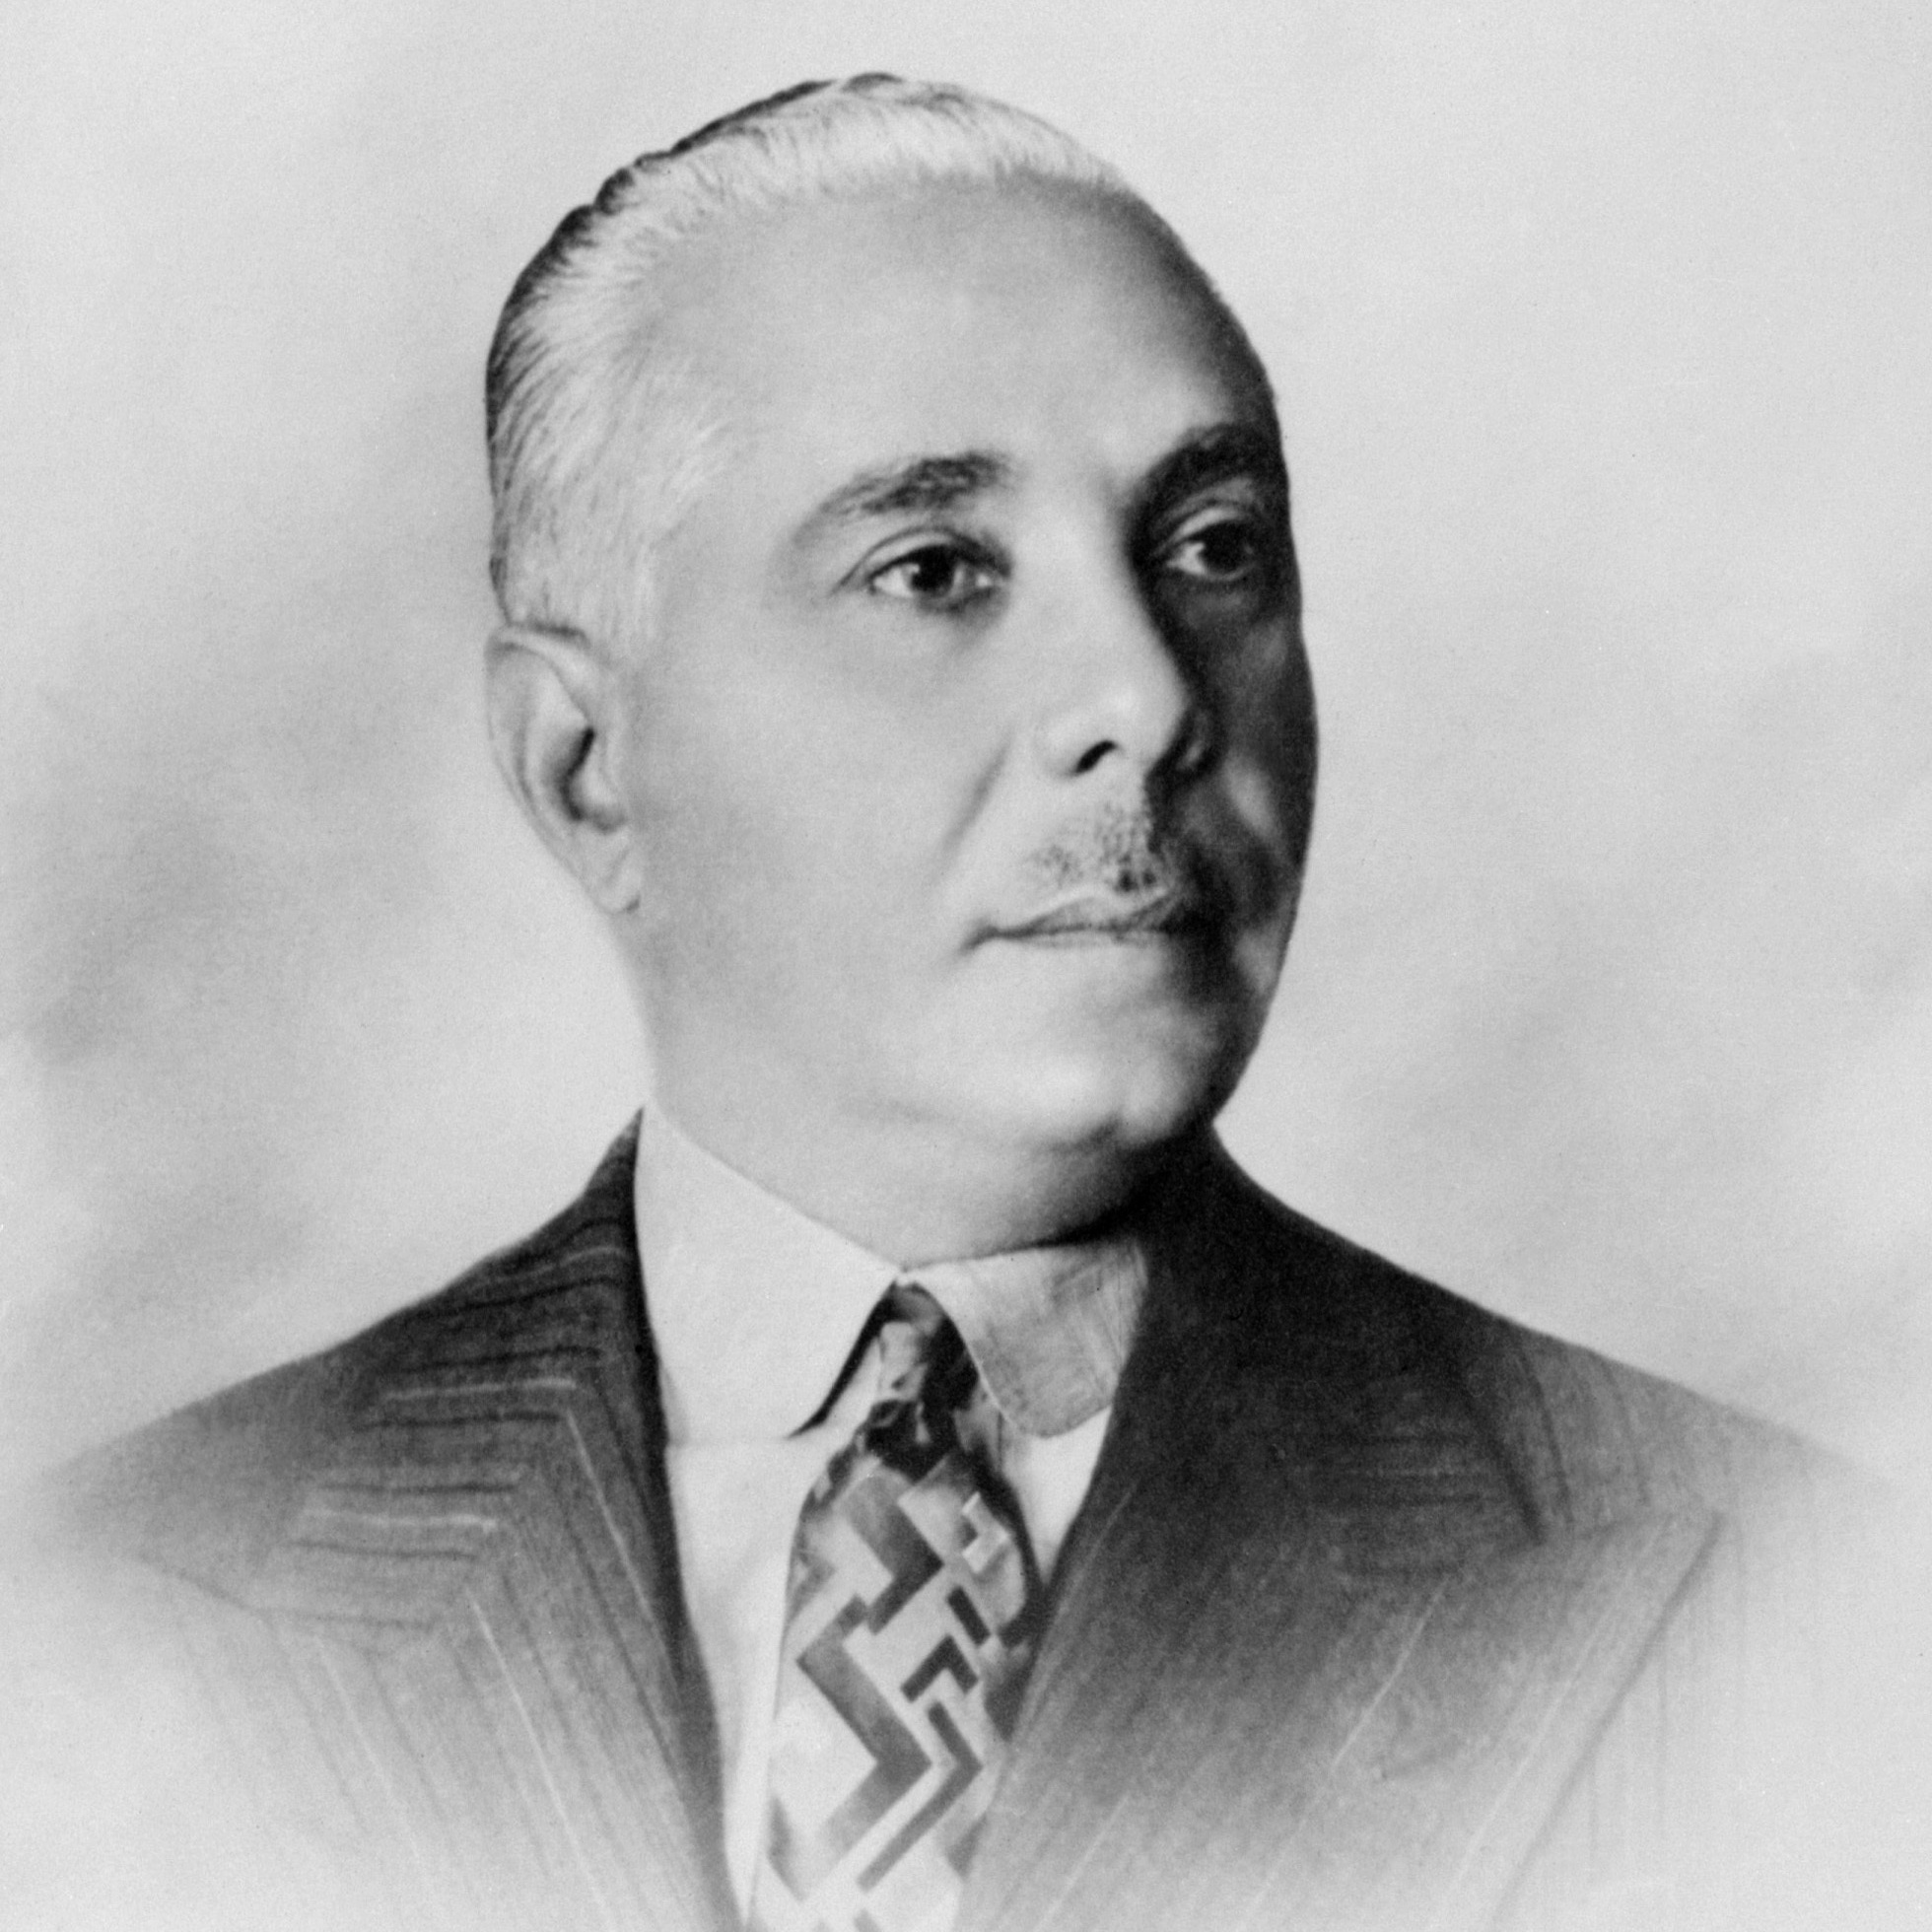 Domician Republic dictator  Rafael Trujillo, in a portrait taken in the 1950s.